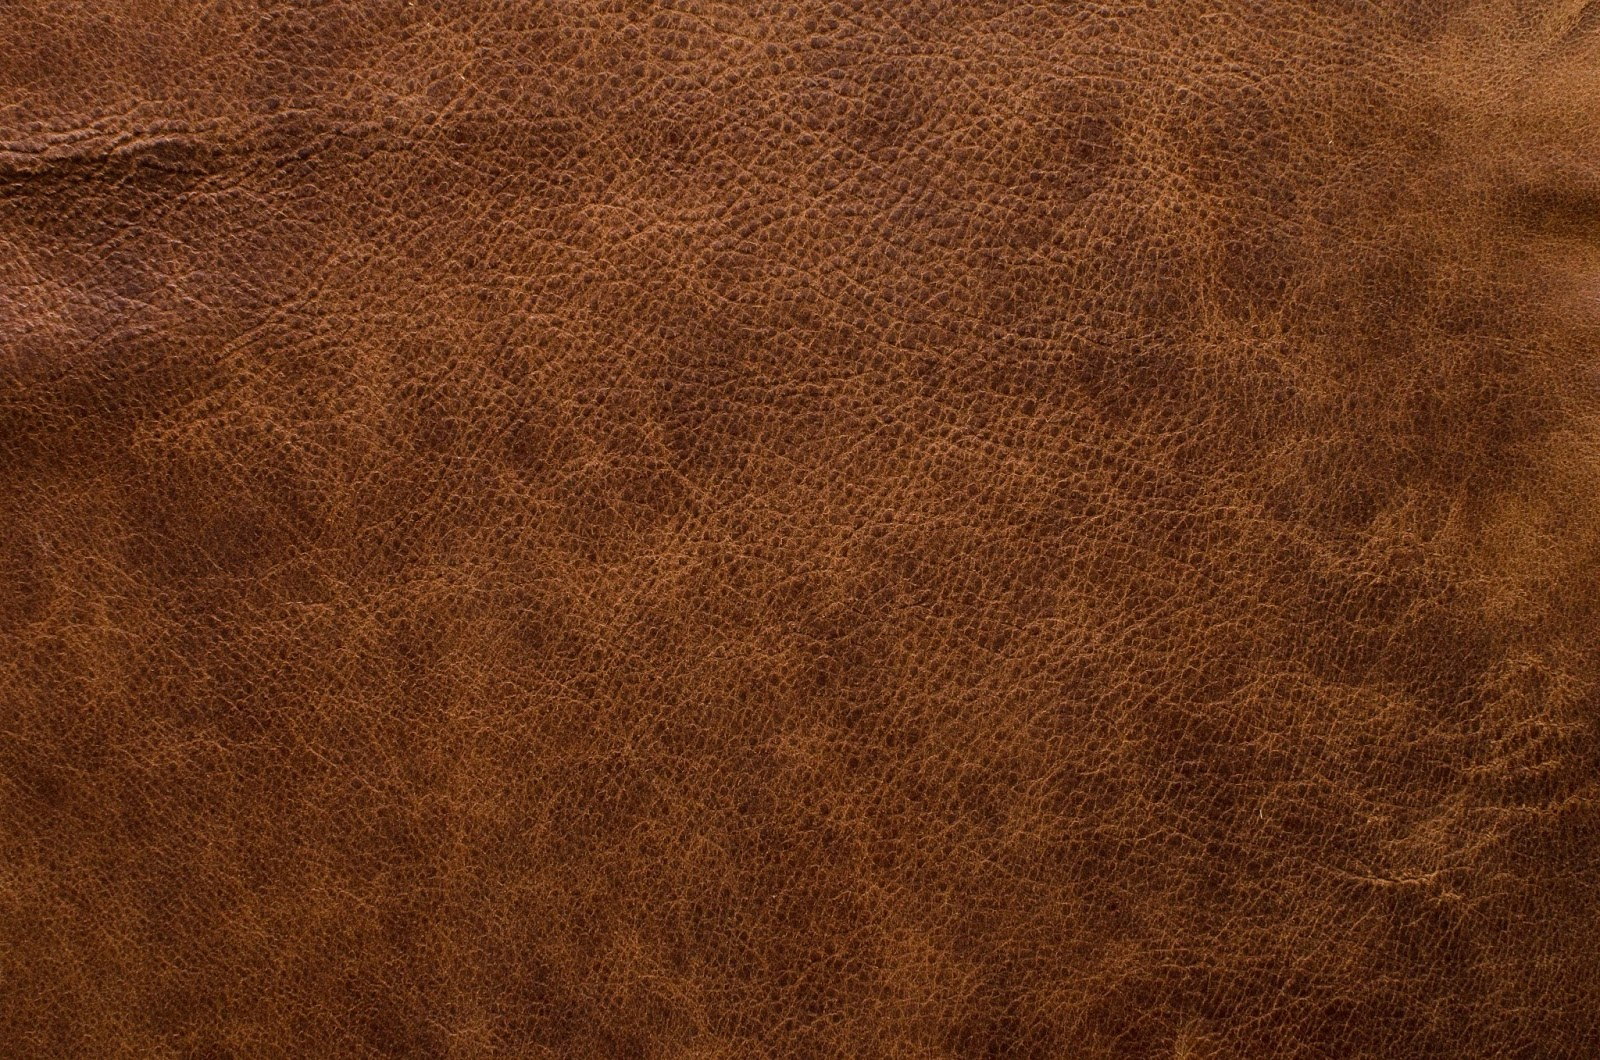 1791efc274 Download Mens Distressed Brown Leather Jacket Wallpaper HD ...